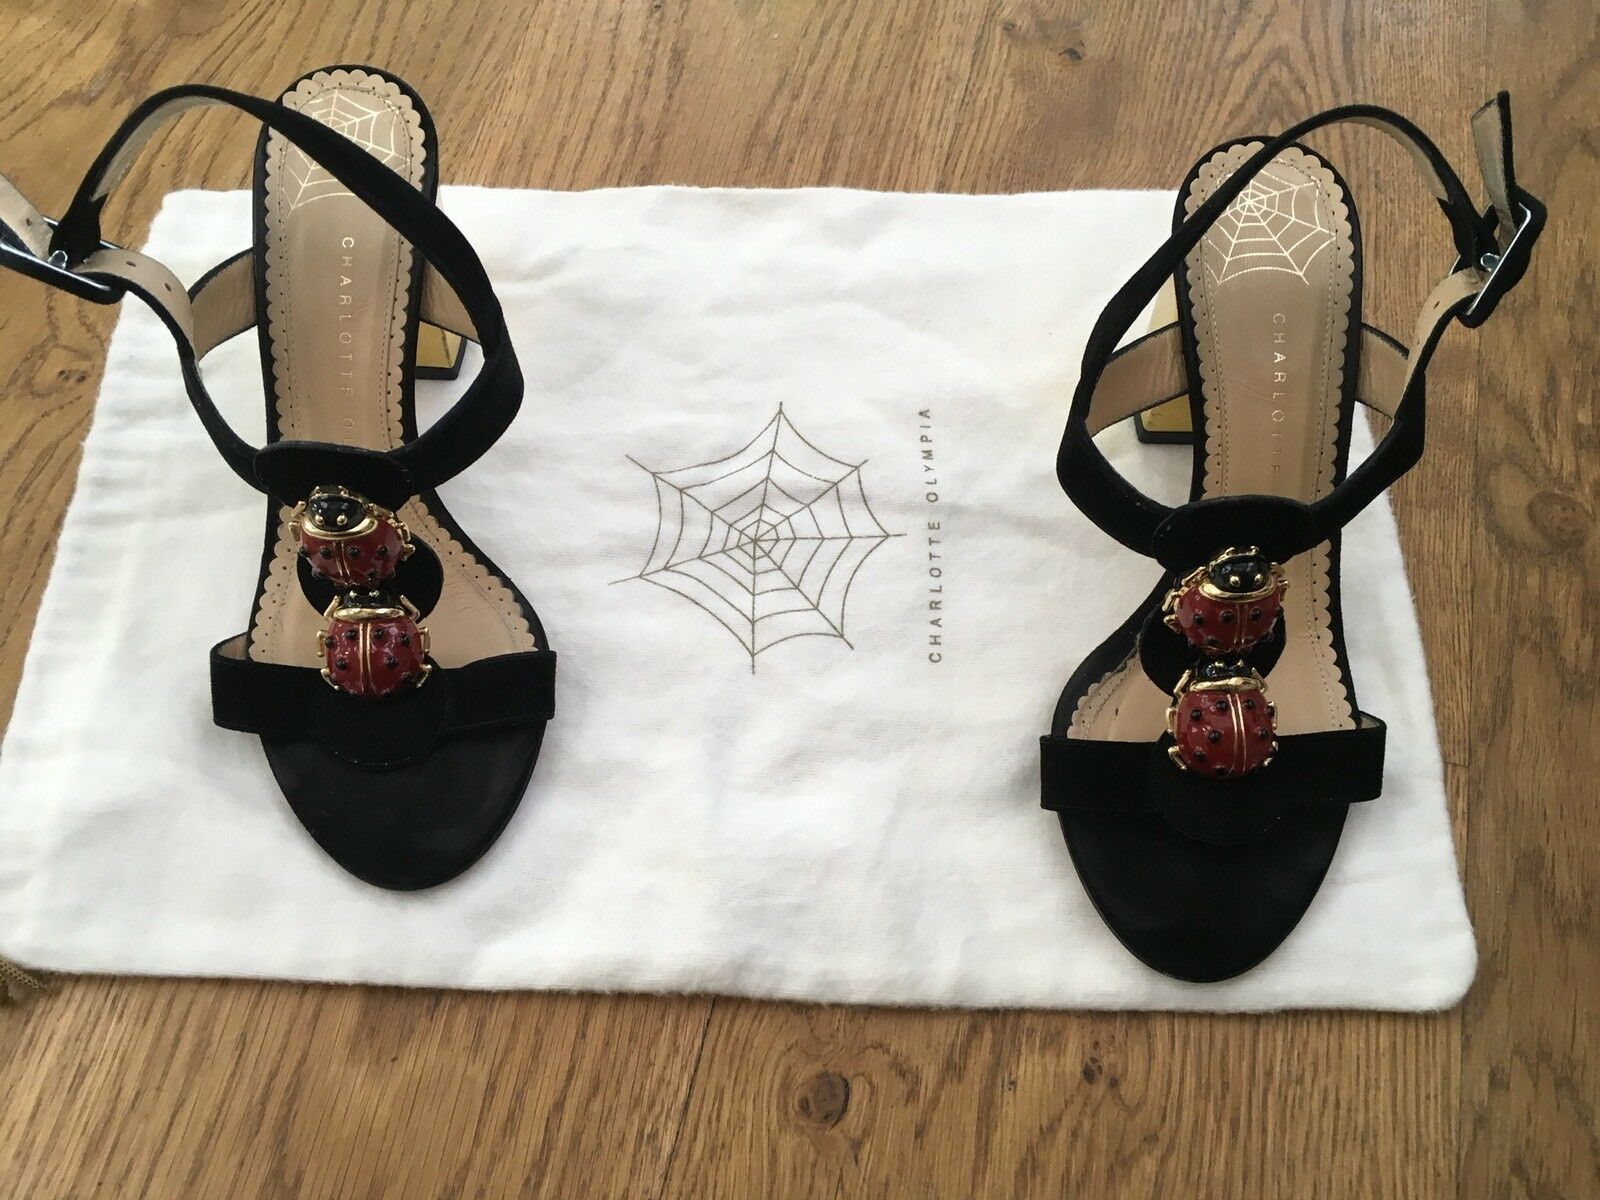 Charlotte Olympia Gala t-strap suede ladybug sandals shoes Size 35 US 5